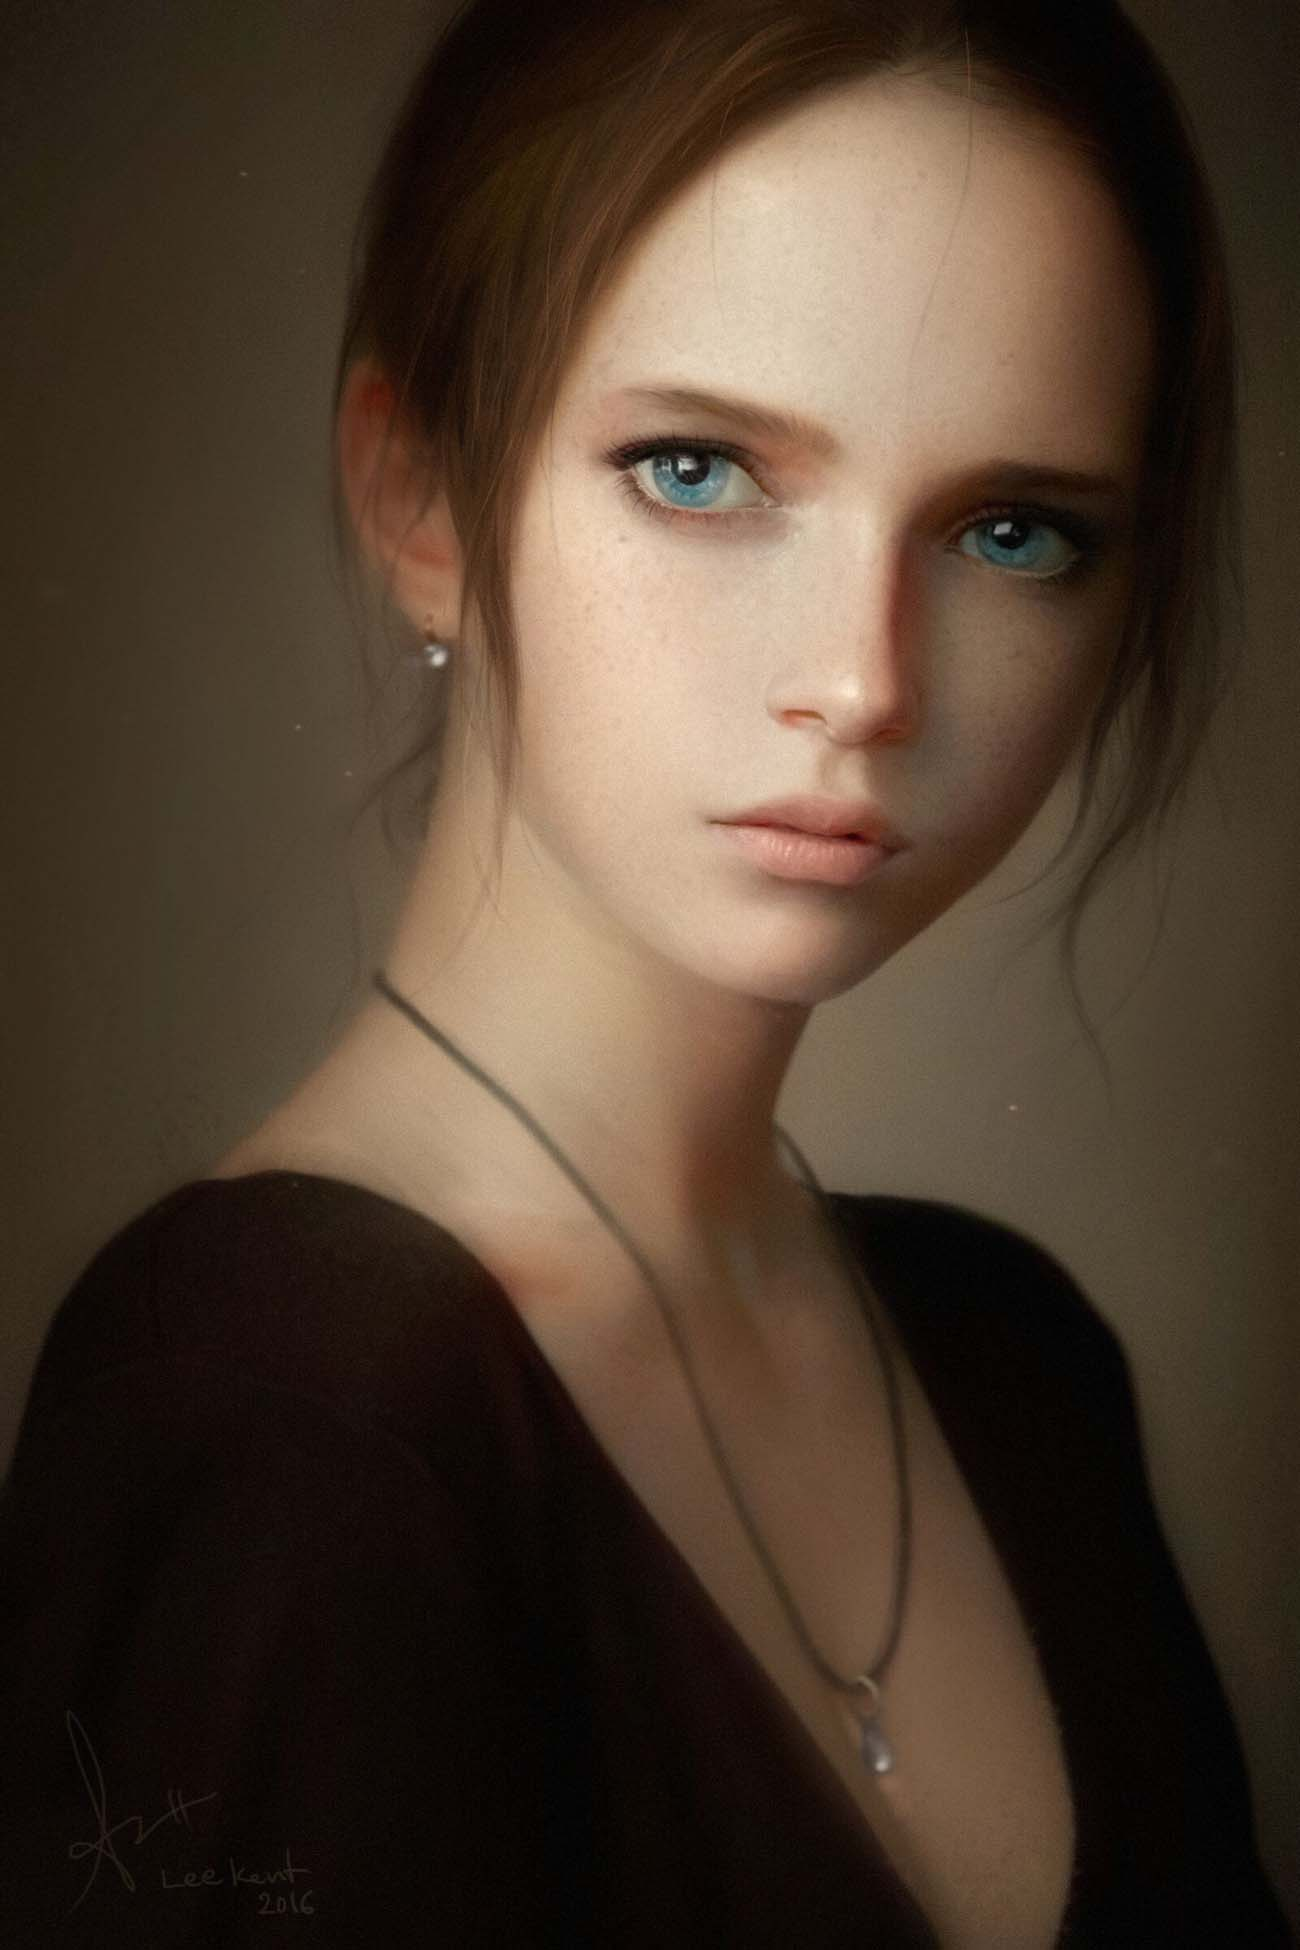 Lee Kent | Paintable.cc Digital Painting Inspiration - Learn the Art of Digital Painting! #digitalpainting #digitalart